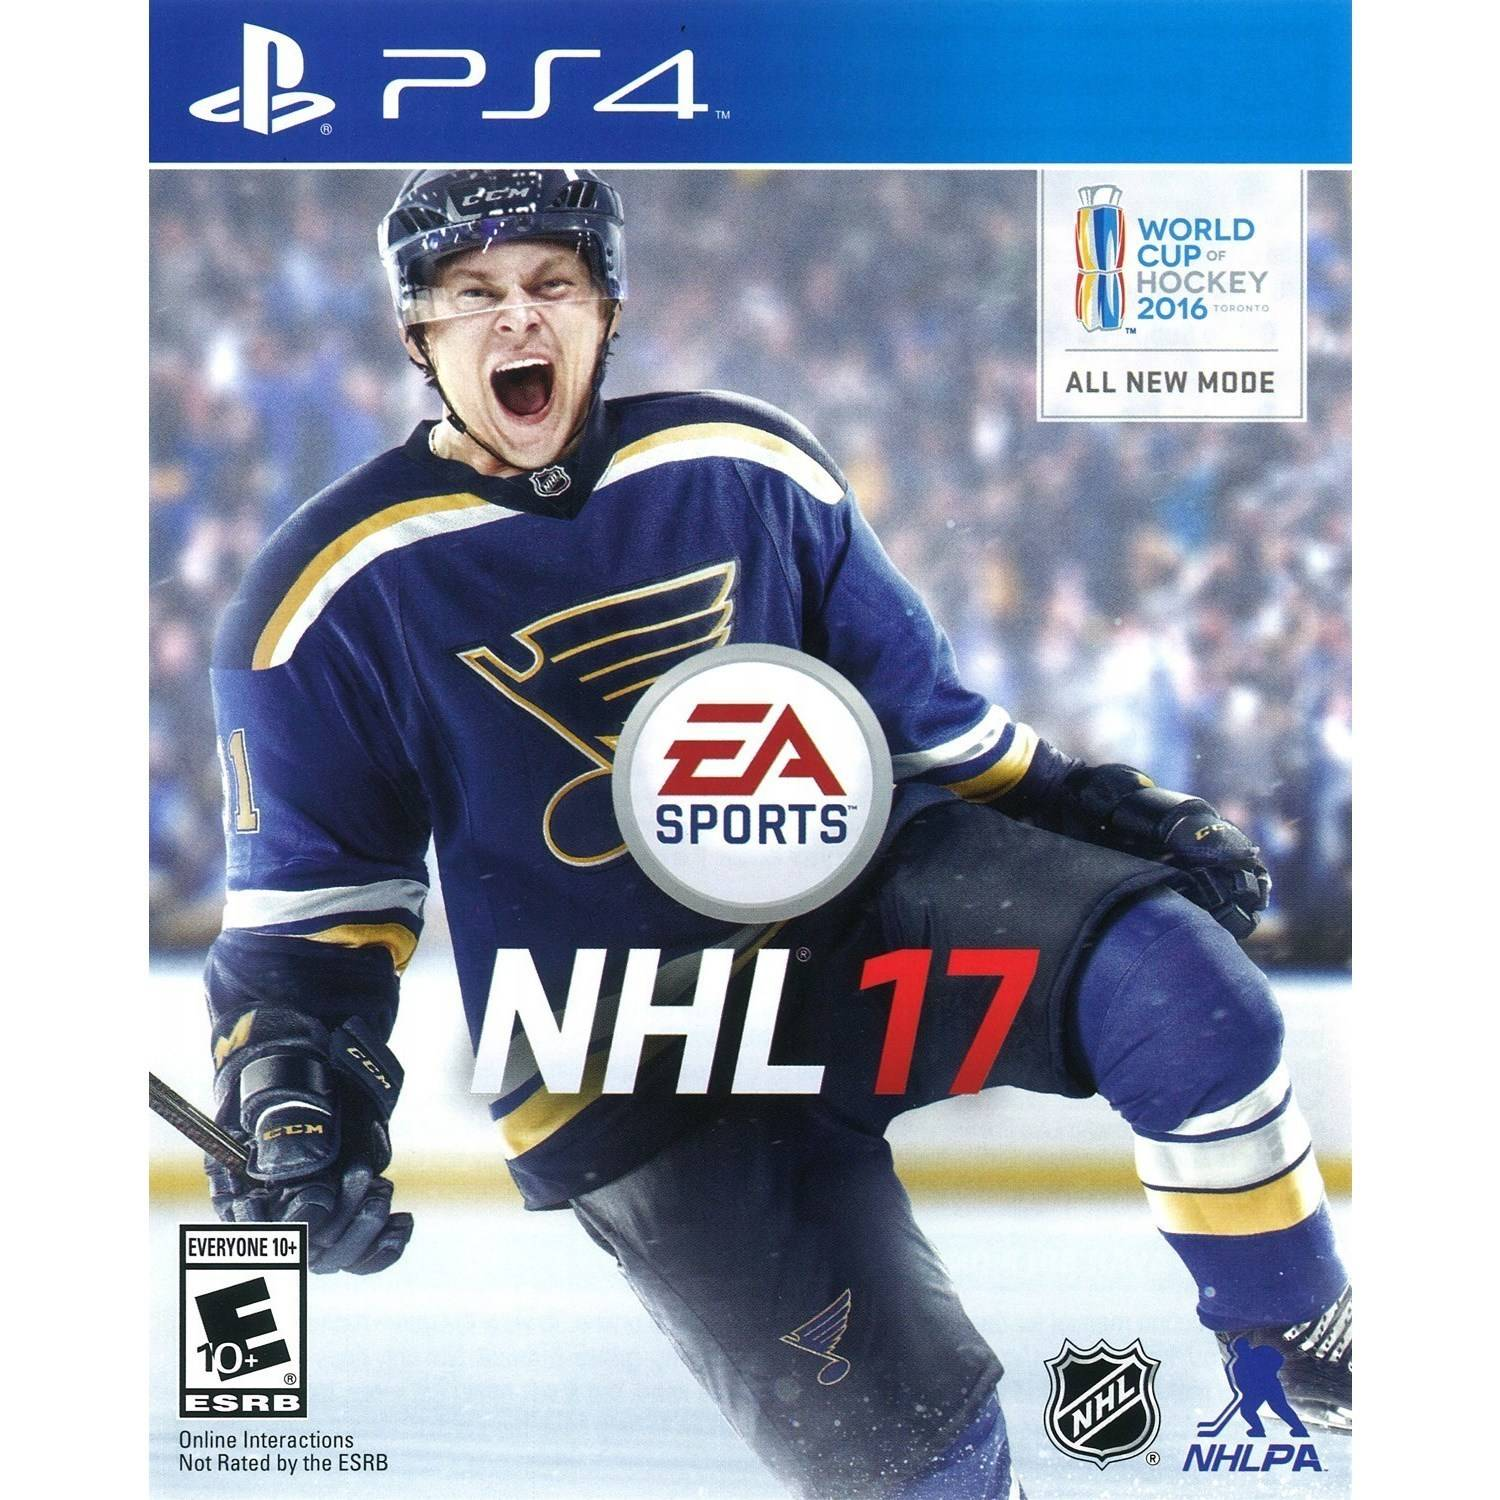 NHL 17 (Playstation 4) by Electronic Arts